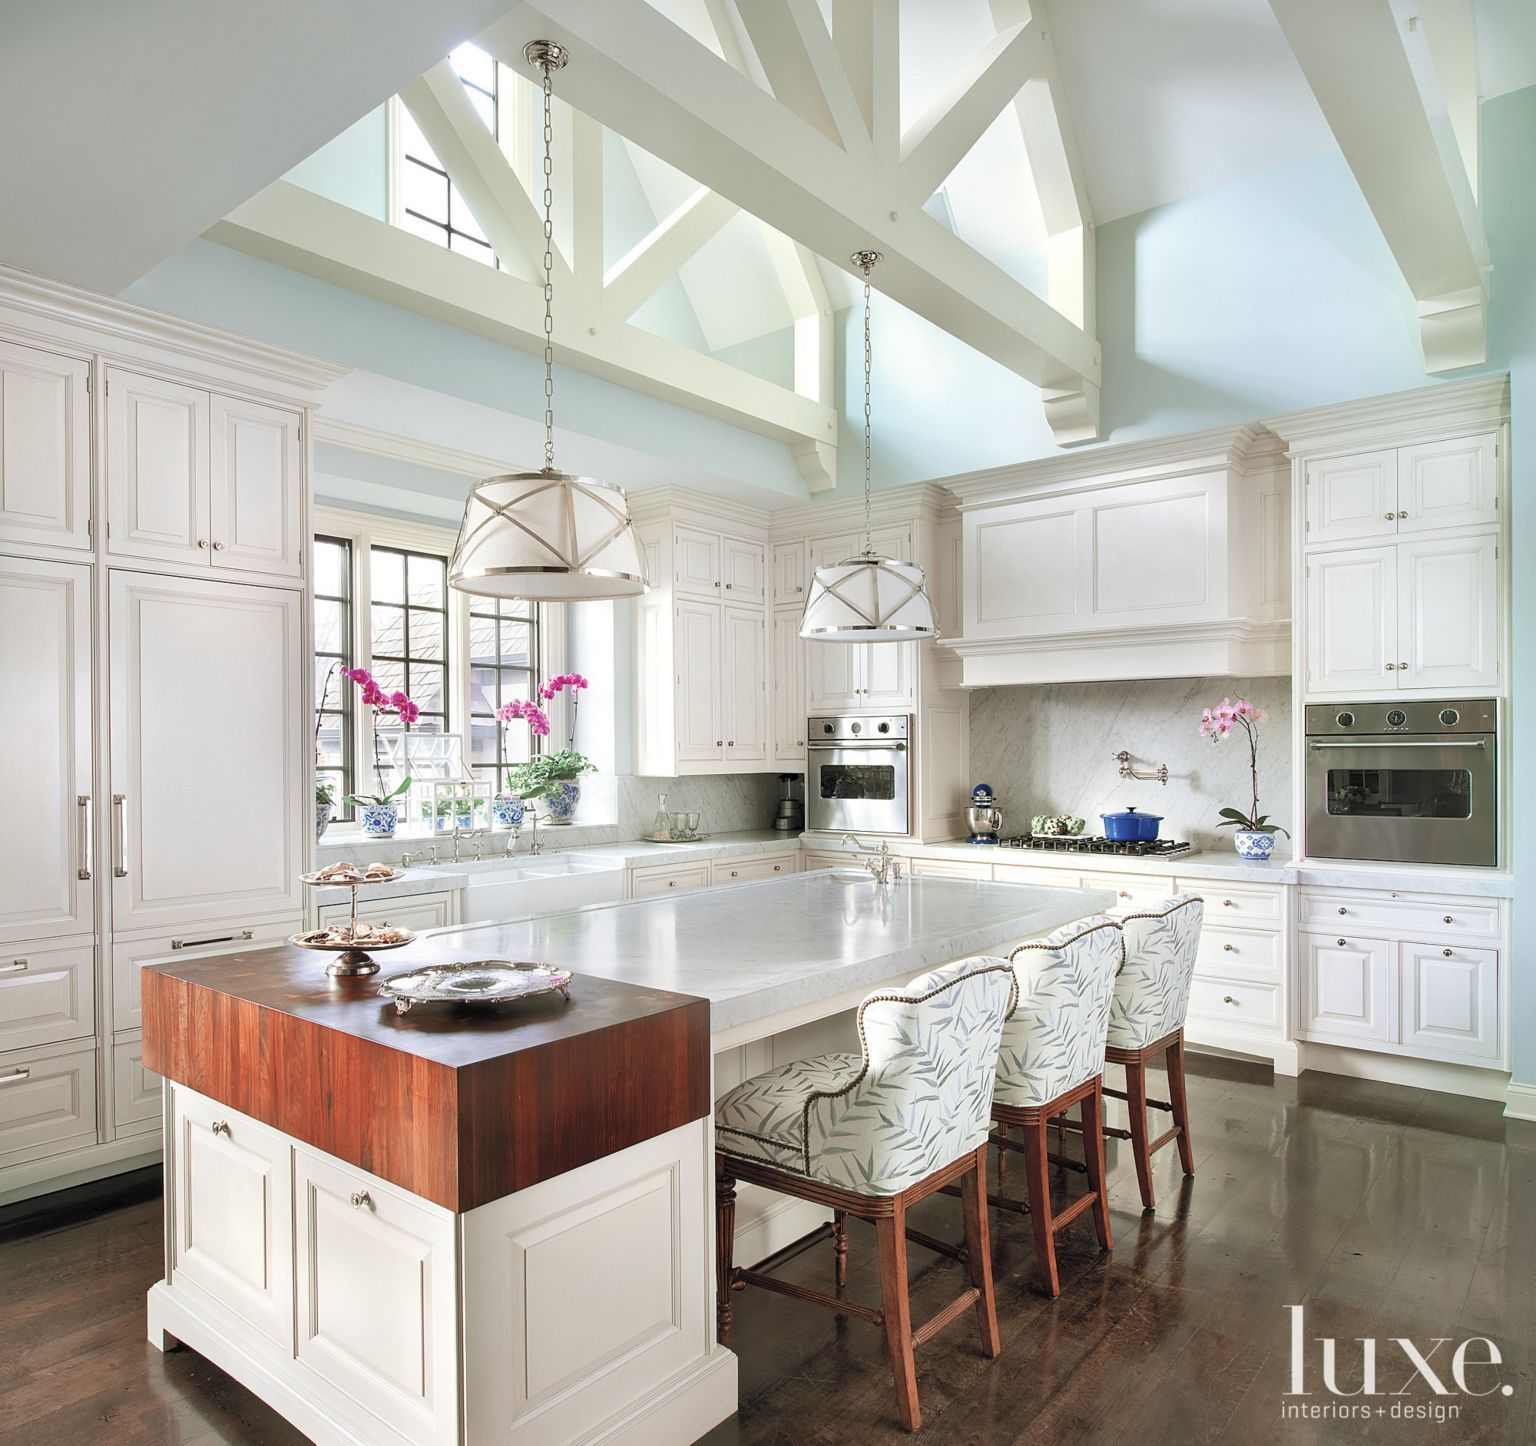 White Kitchen Vaulted Ceiling the lofty light-filled kitchen features a vaulted ceiling and true